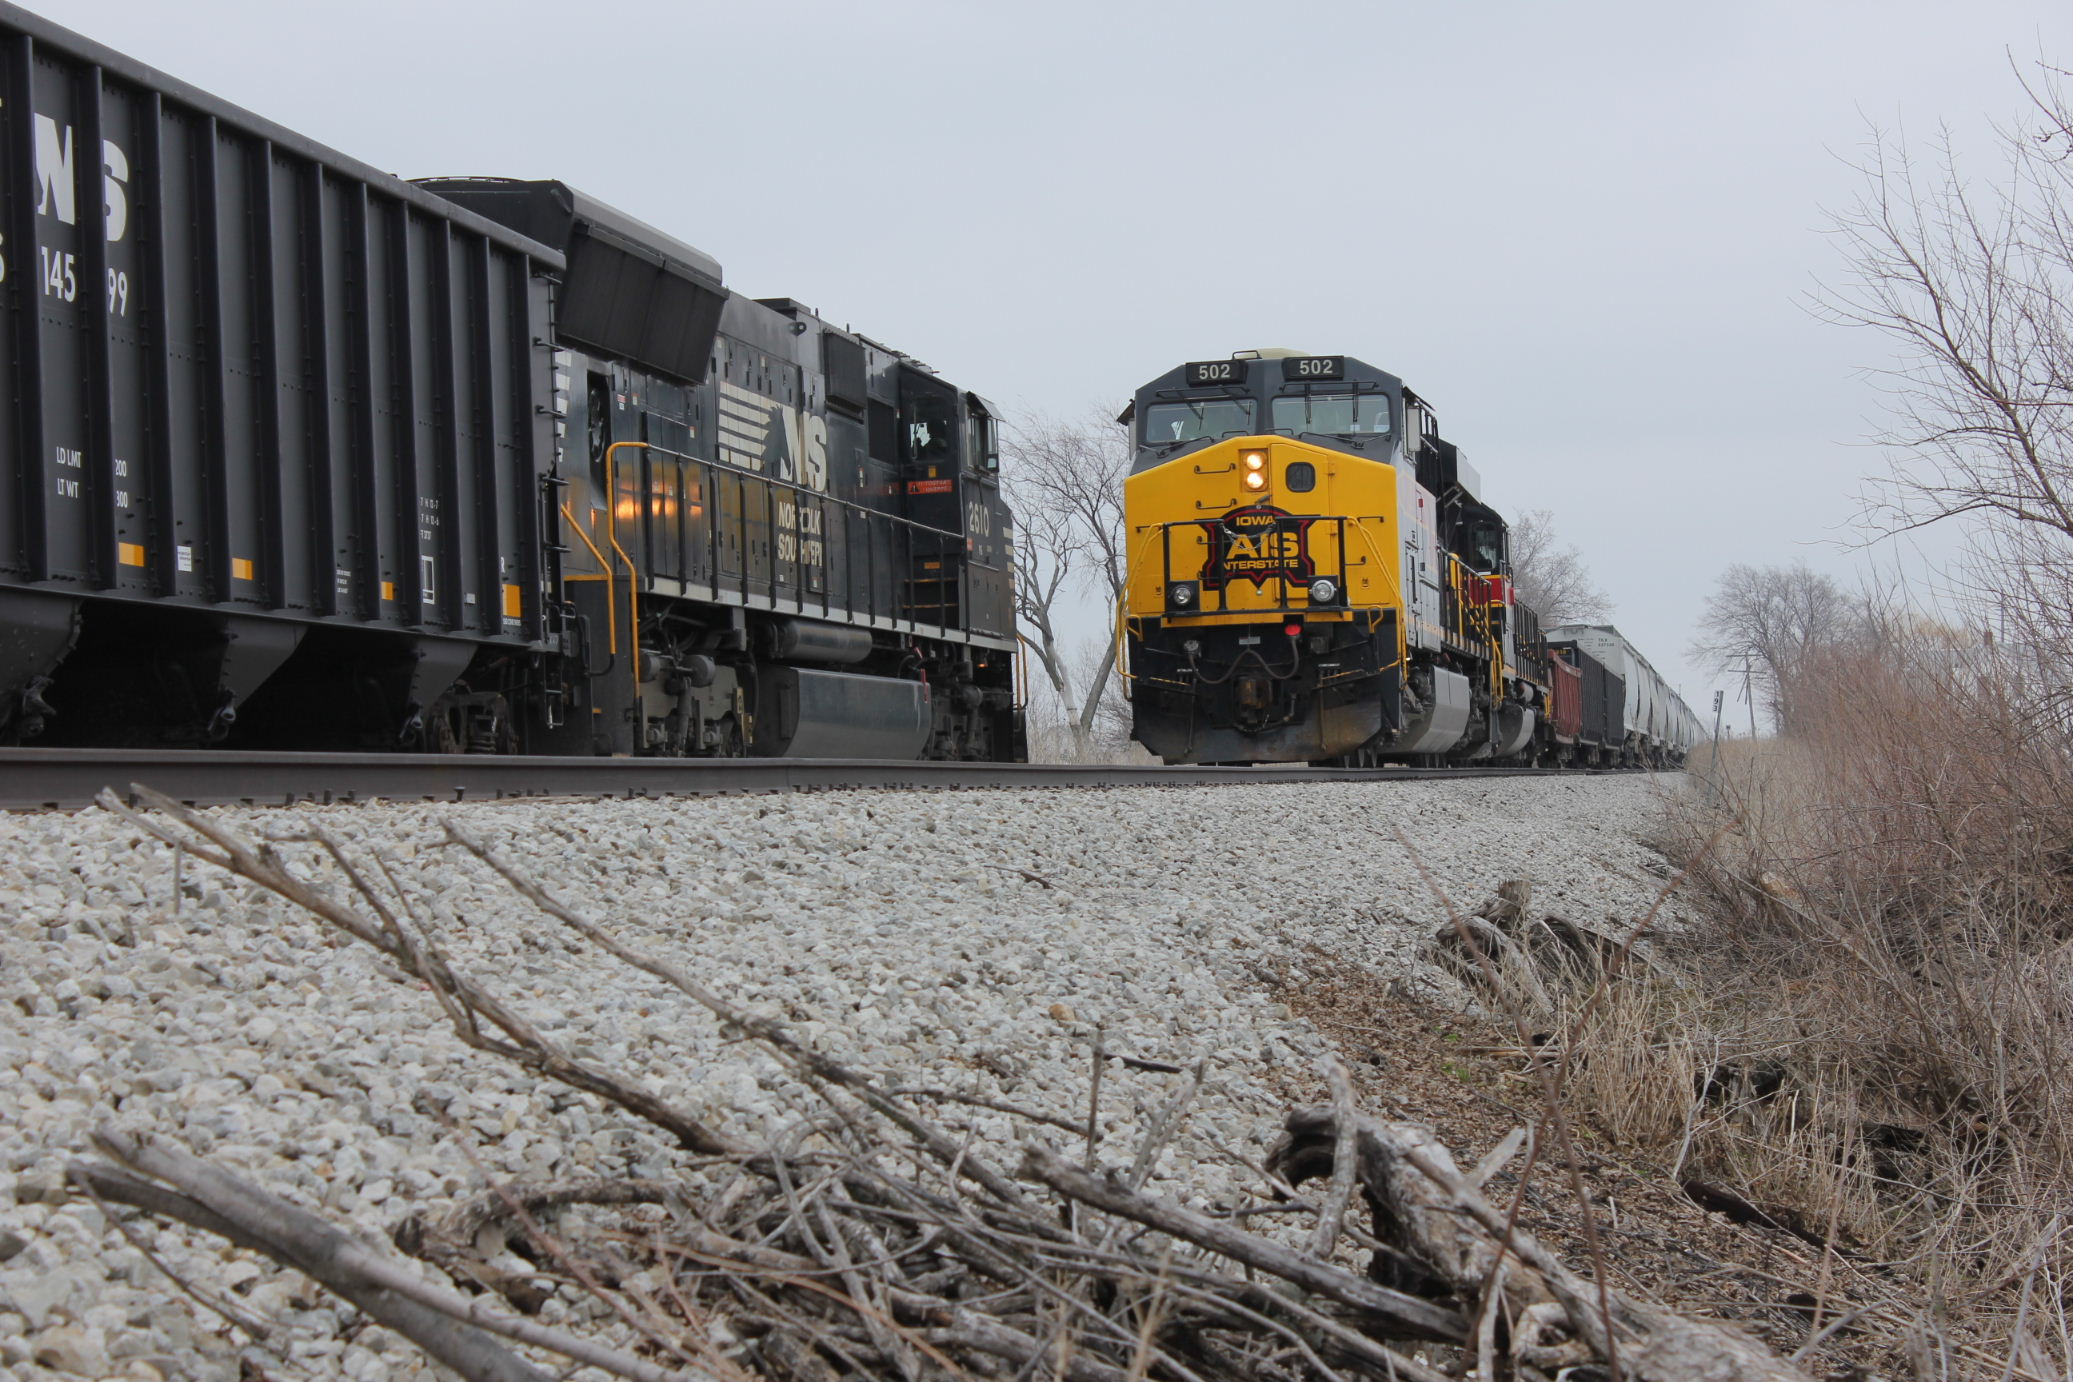 WB meets coal mtys with NS power at the east end of Walcott siding, March 28, 2014